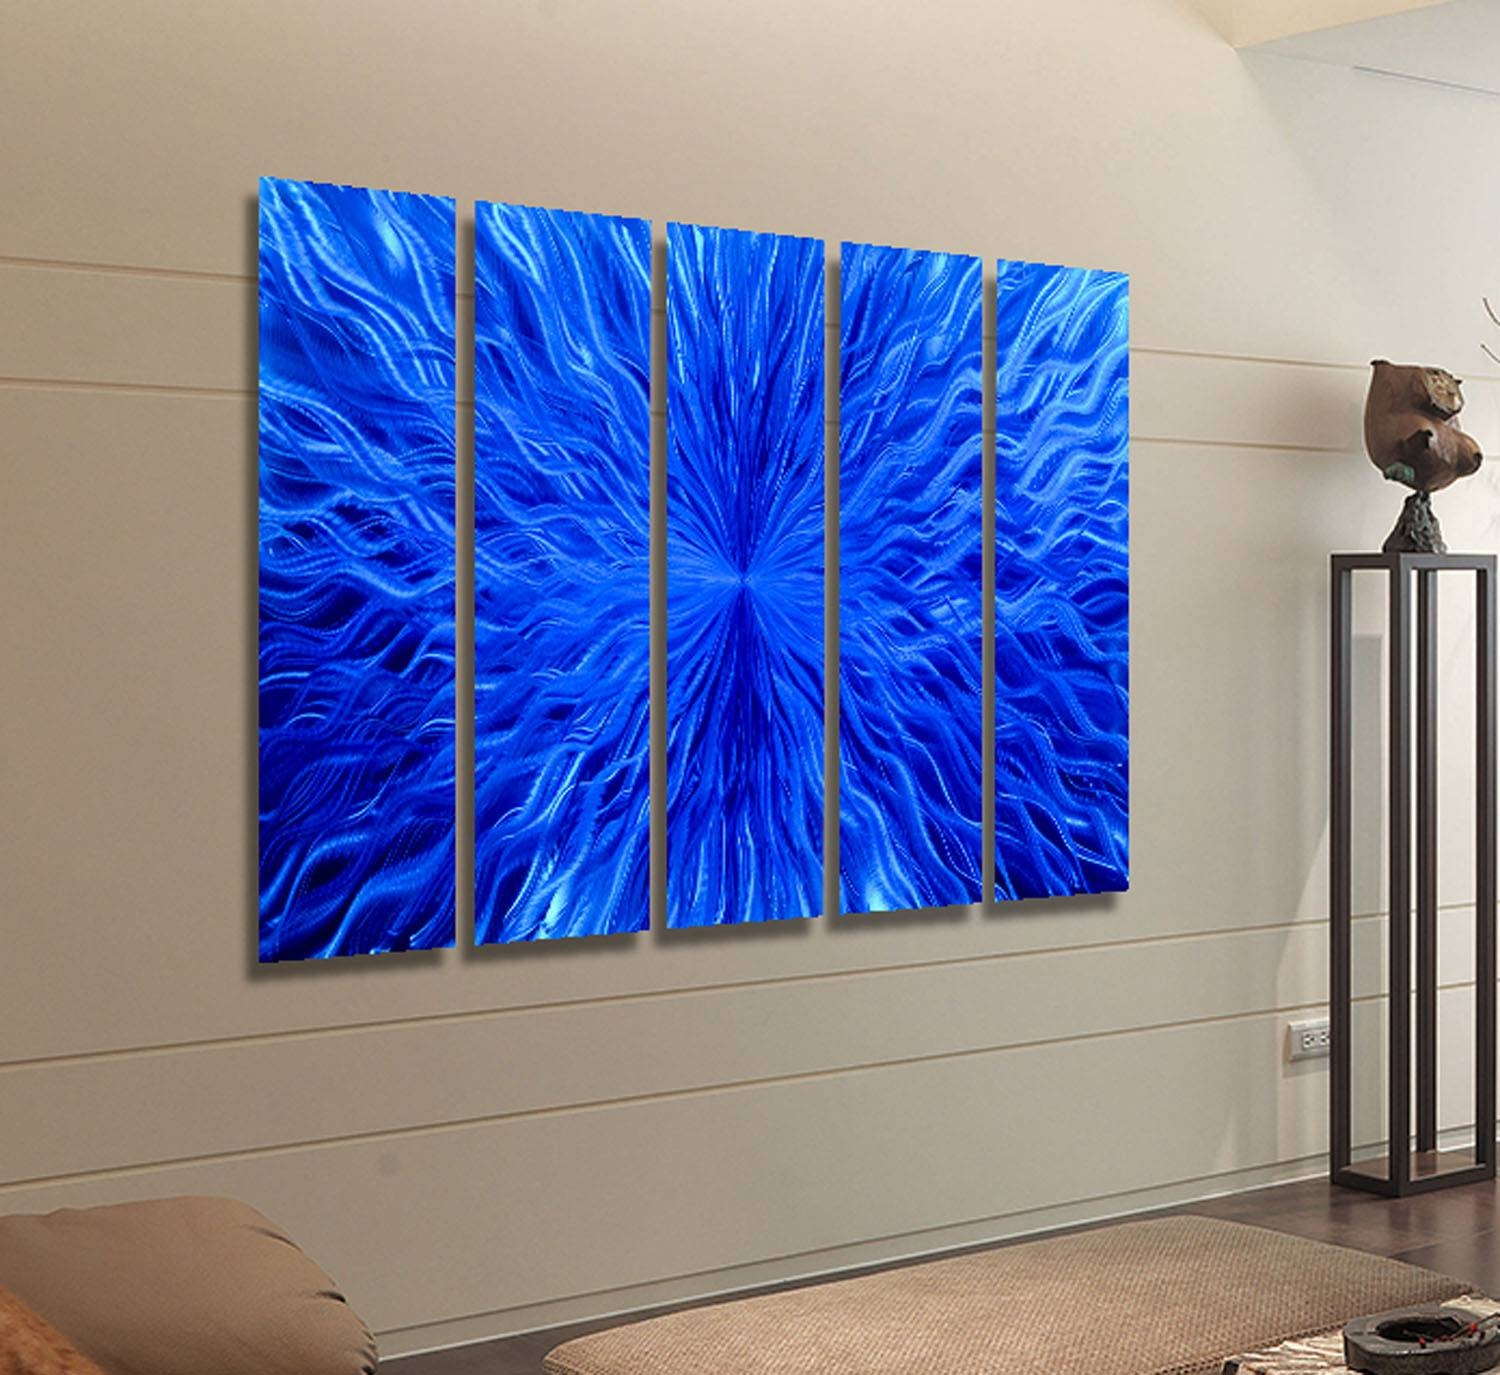 Blue Hurricane & Silver 3d Metal Wall Art Sculpture Accent Box In Newest Abstract Metal Wall Art (View 19 of 20)